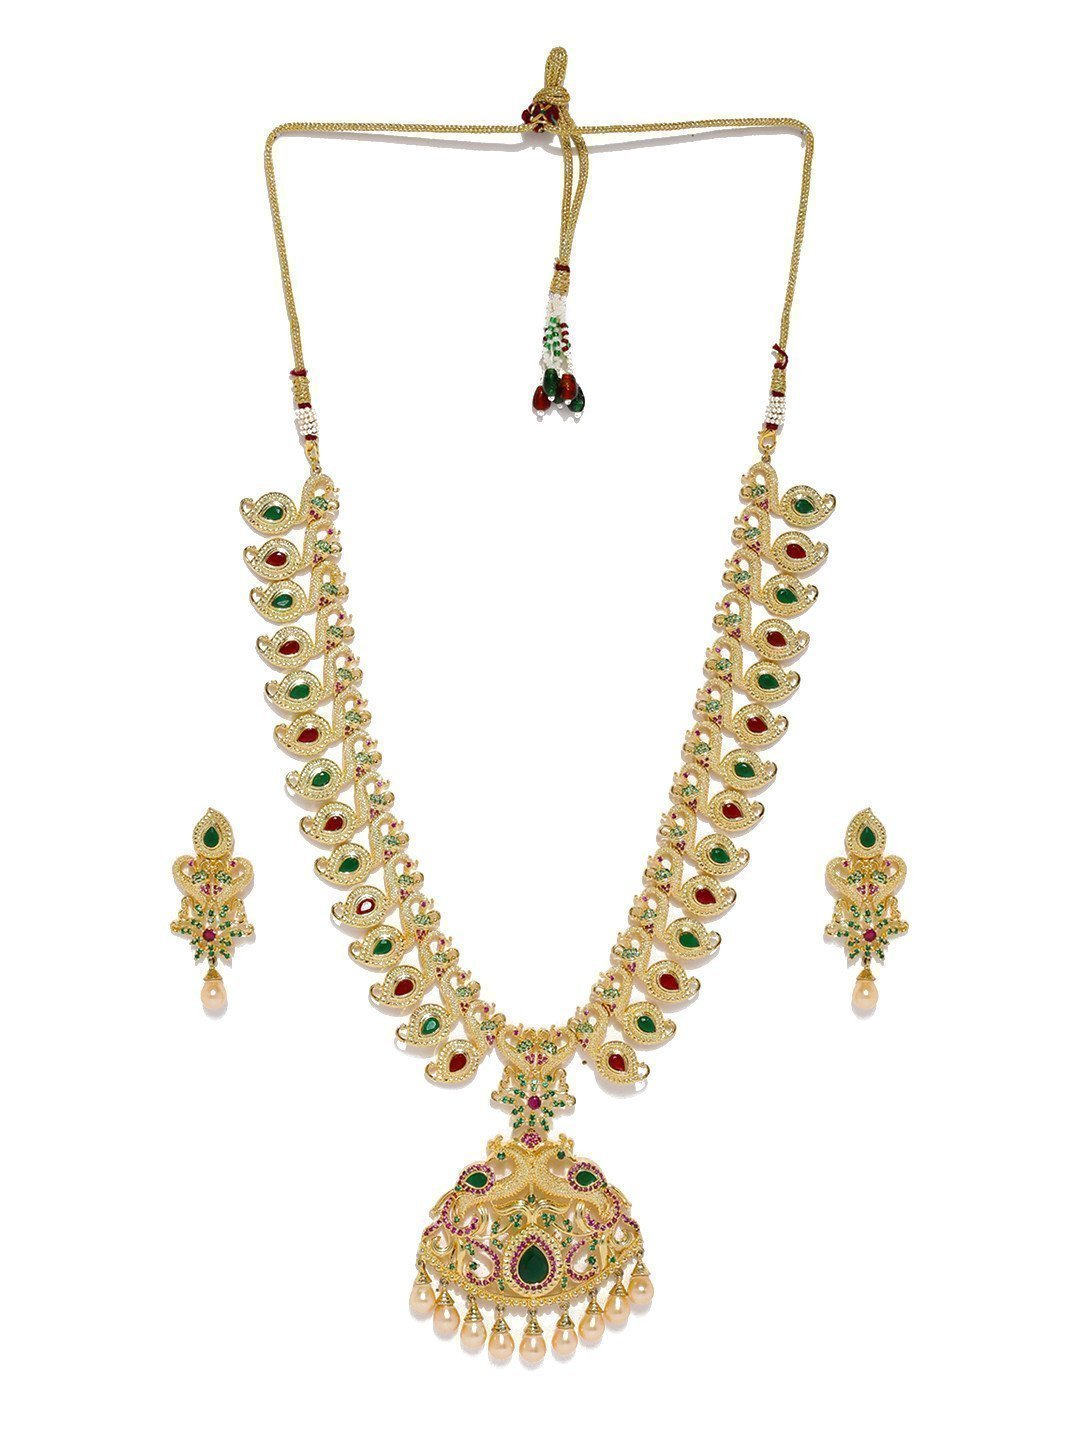 Designer Multiple Peacock Cubic Zirconia With Pearl Drops Long Necklace Set - Zpfk5843